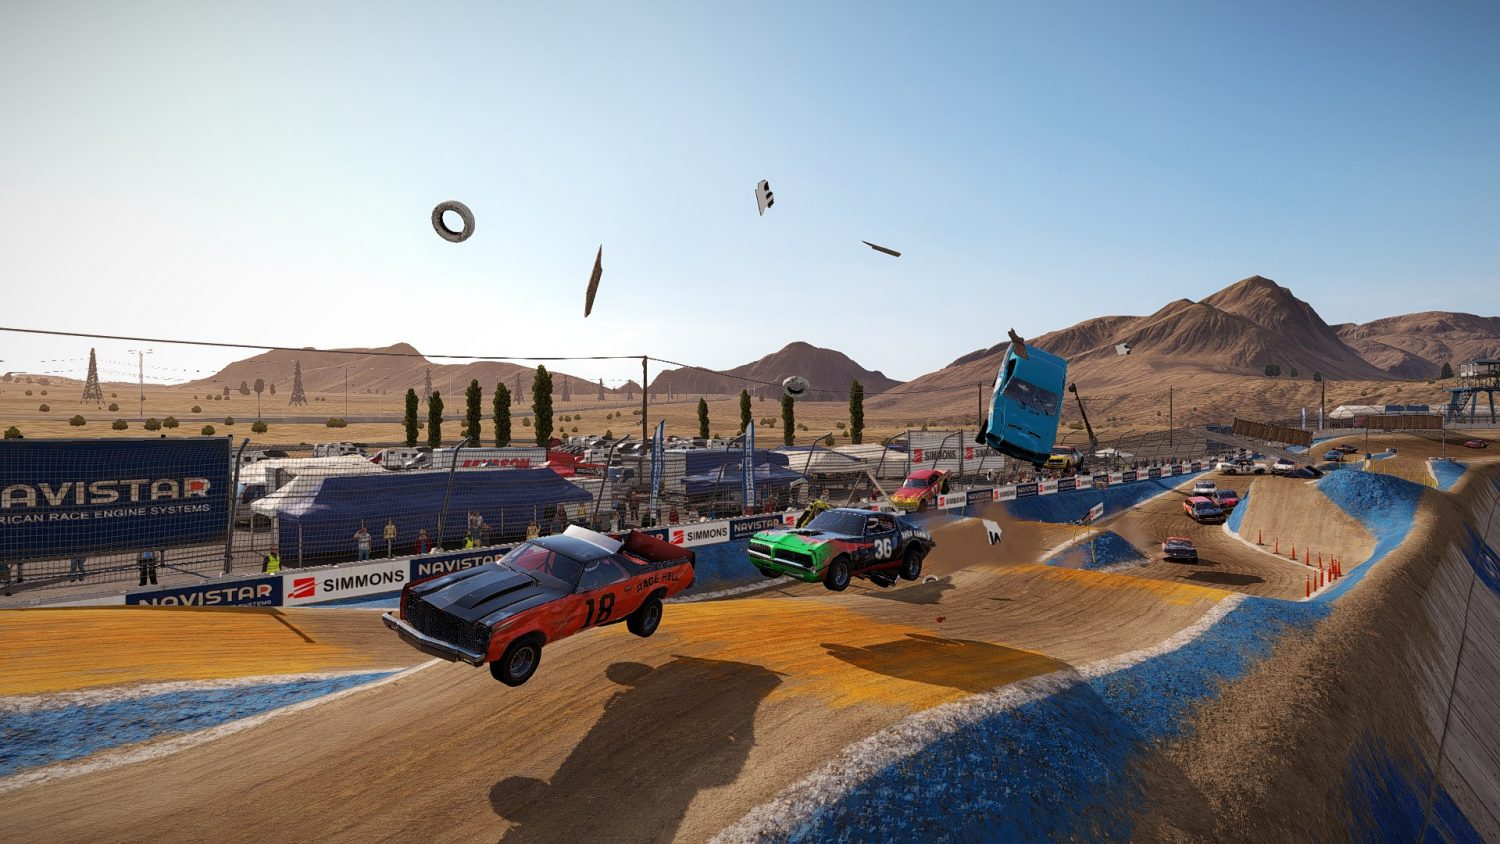 wreckfest. Credit photo: Will (the real one) on Steam